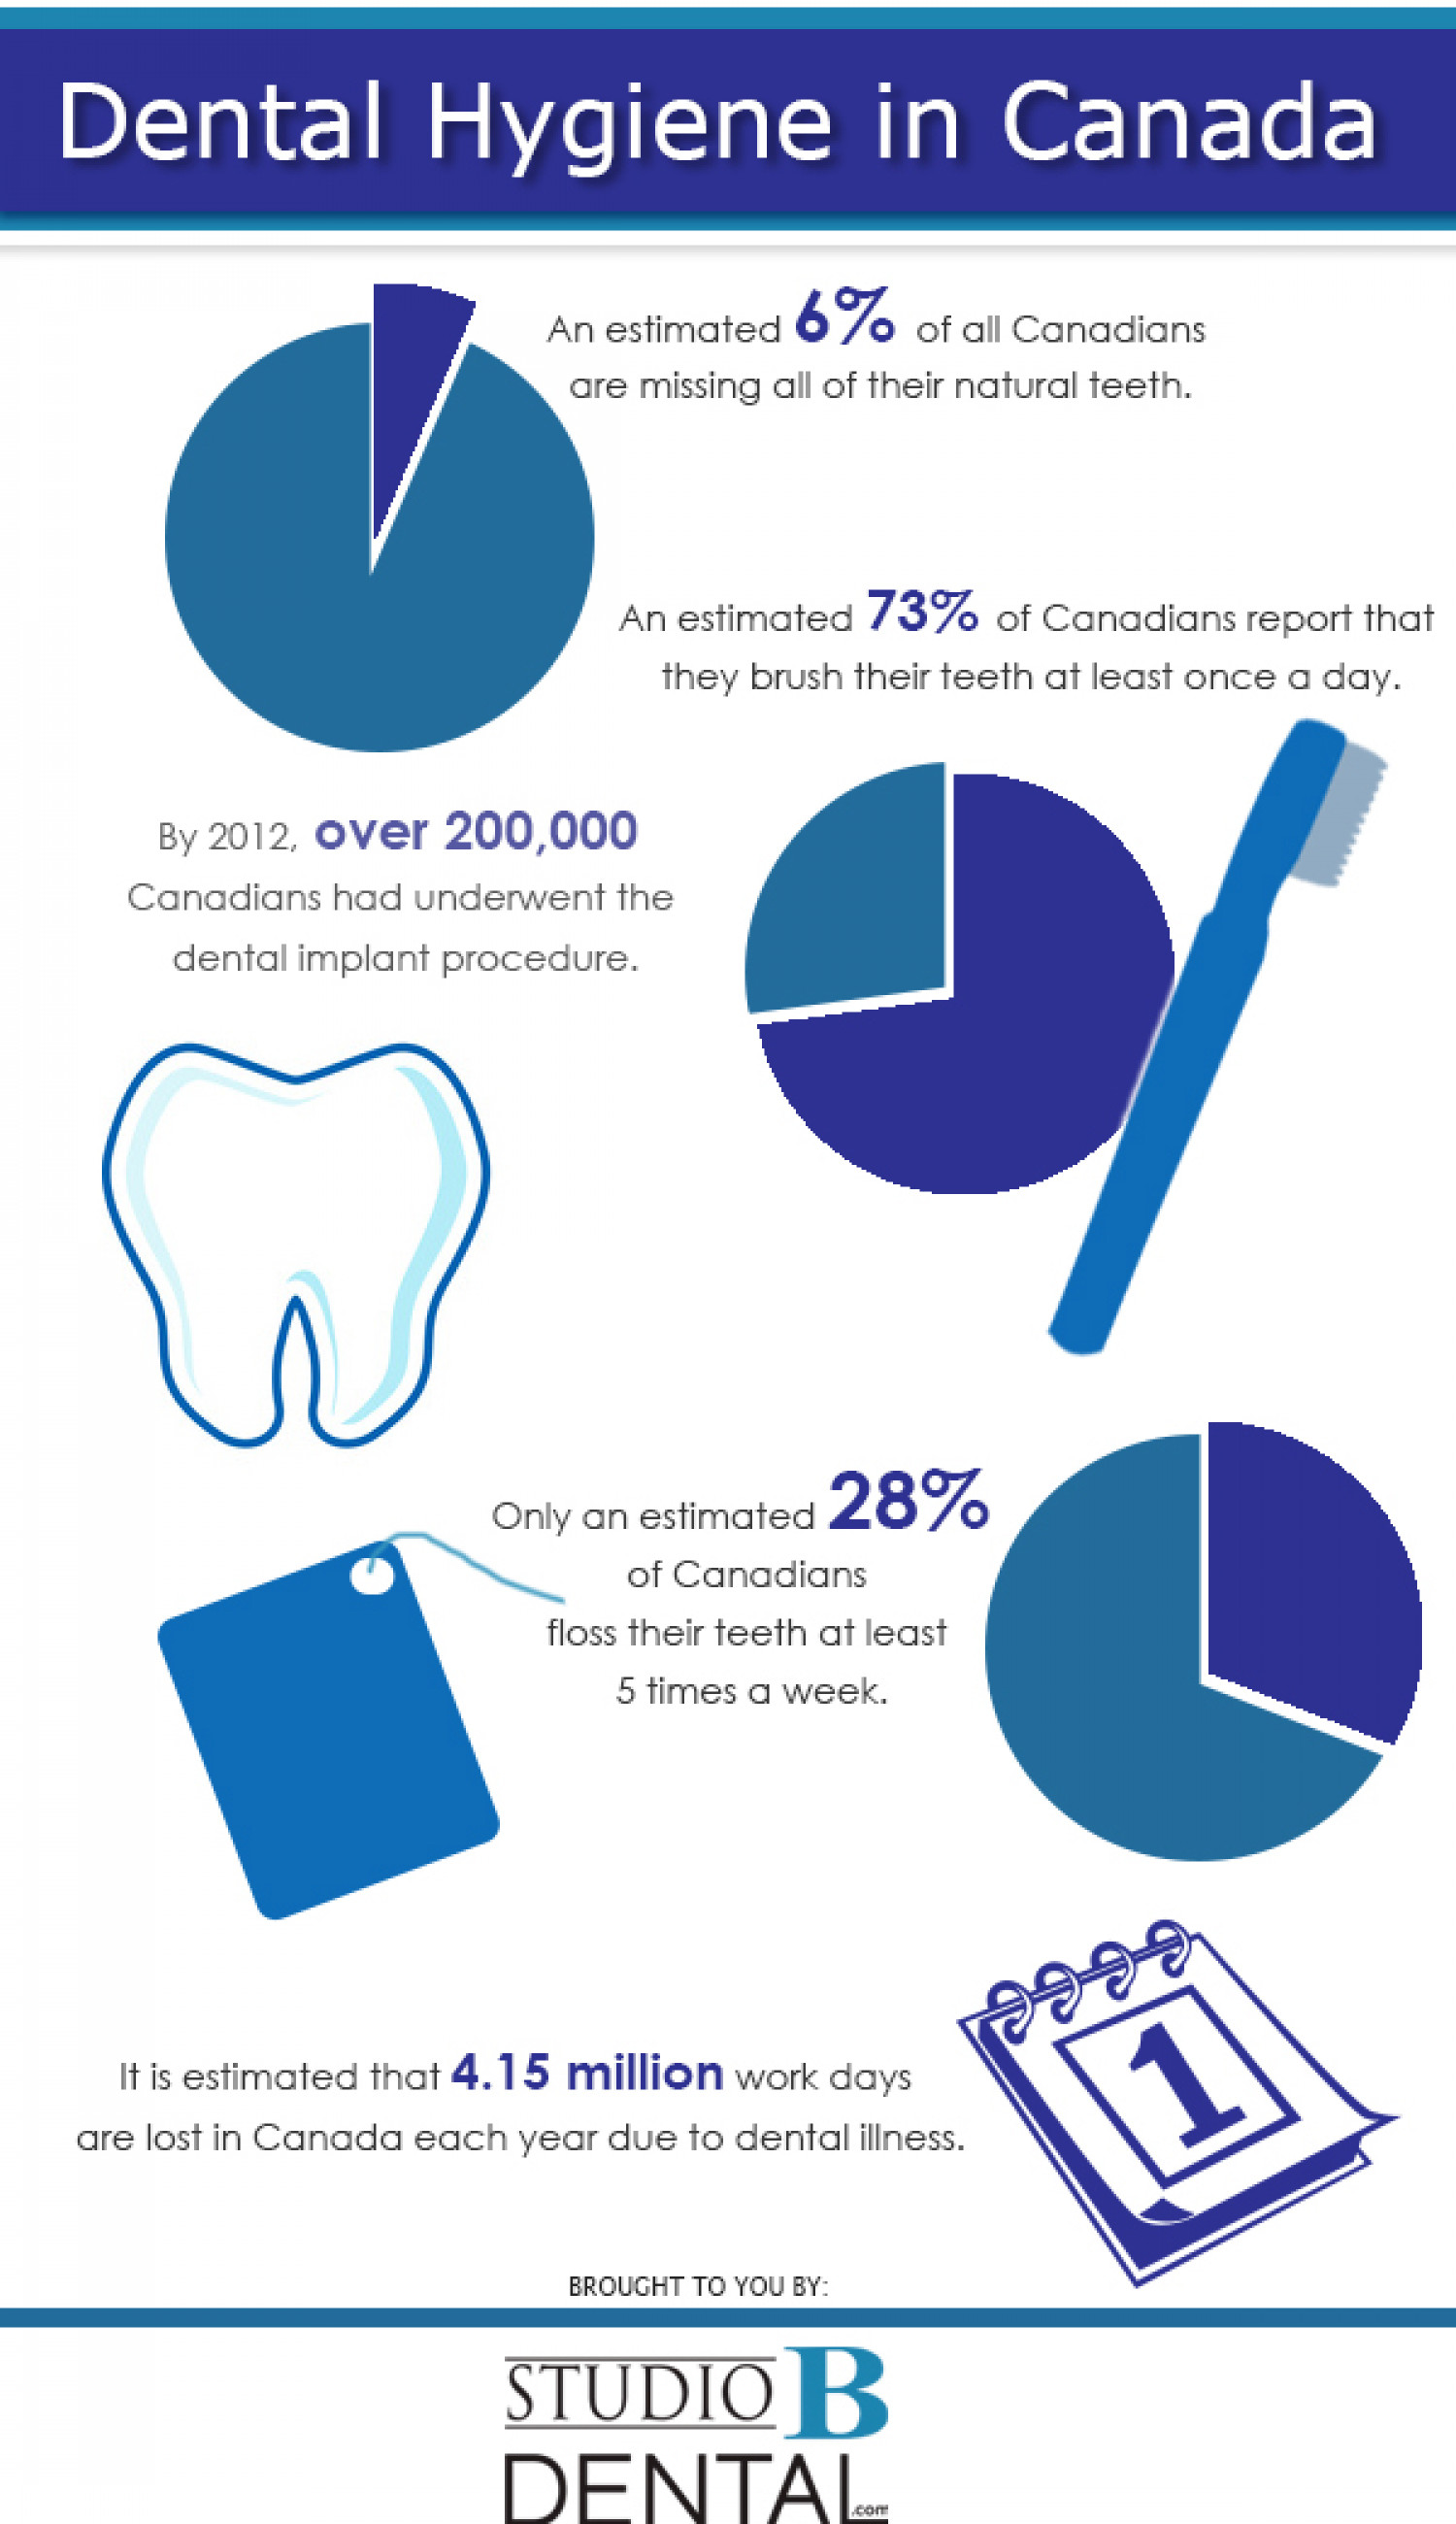 Dental Hygiene in Canada Infographic